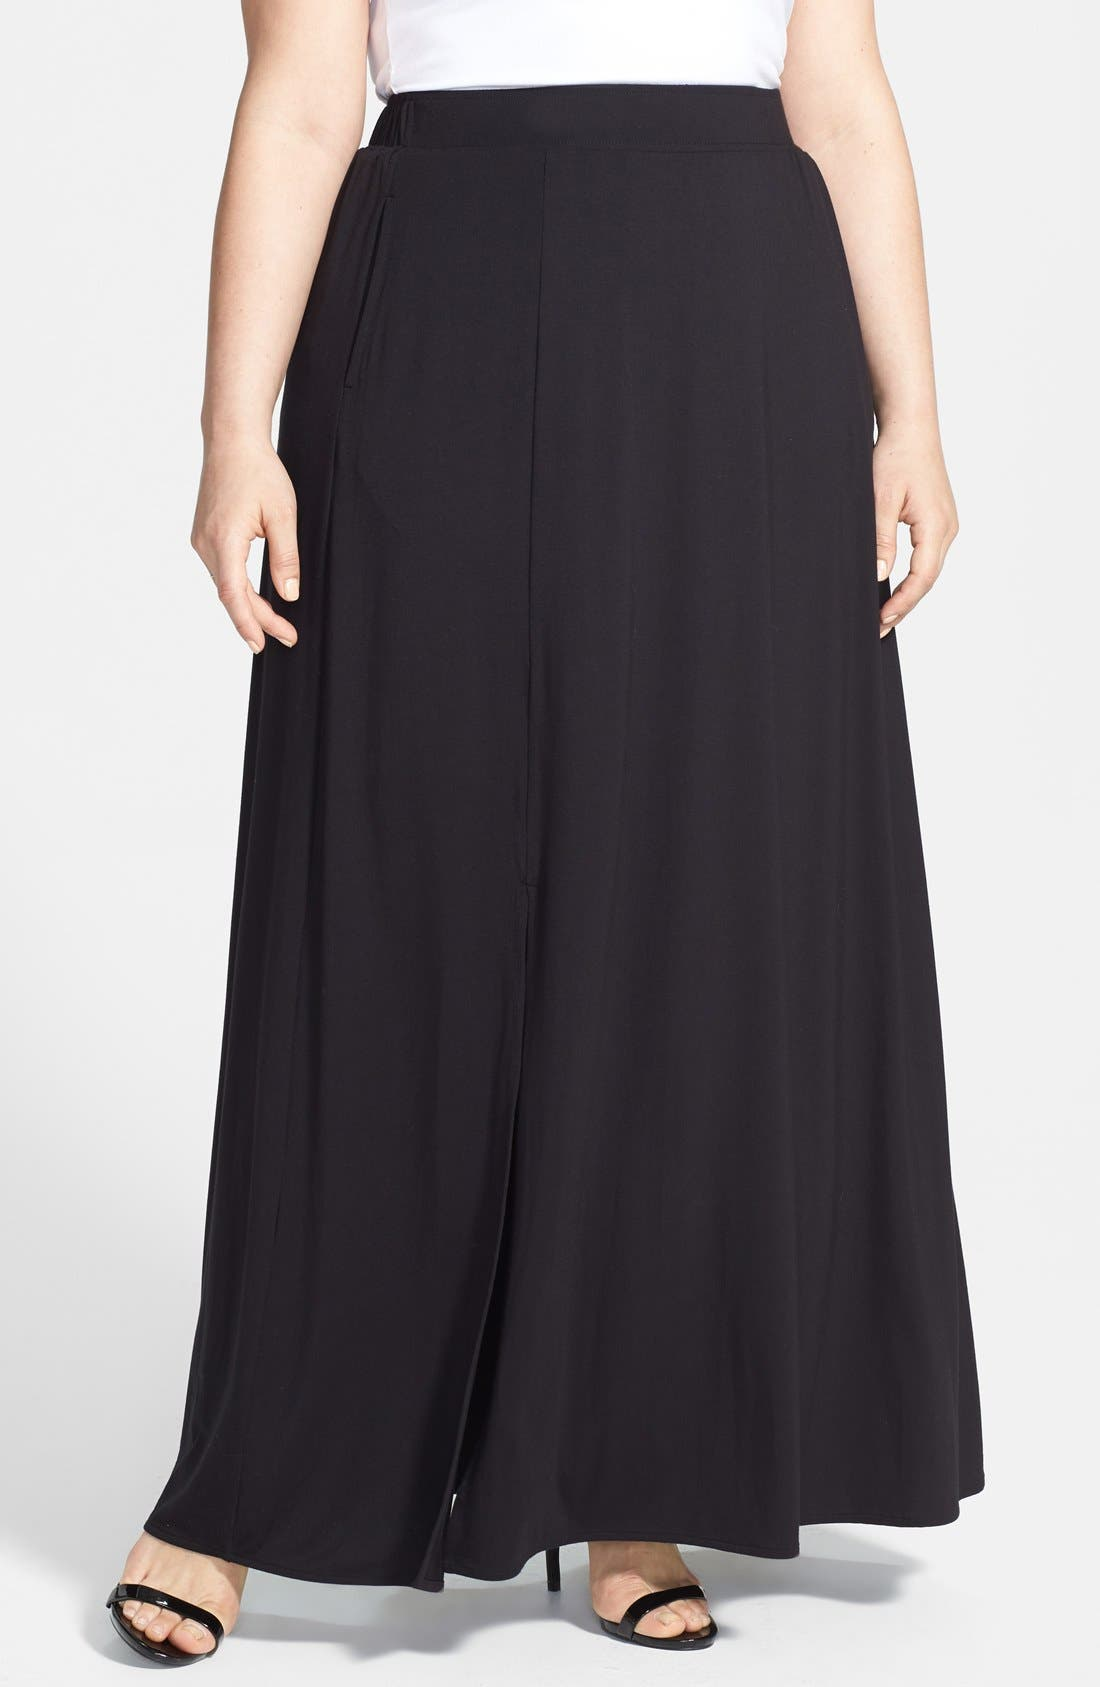 Alternate Image 1 Selected - Sejour Stretch A-Line Maxi Skirt (Plus Size)